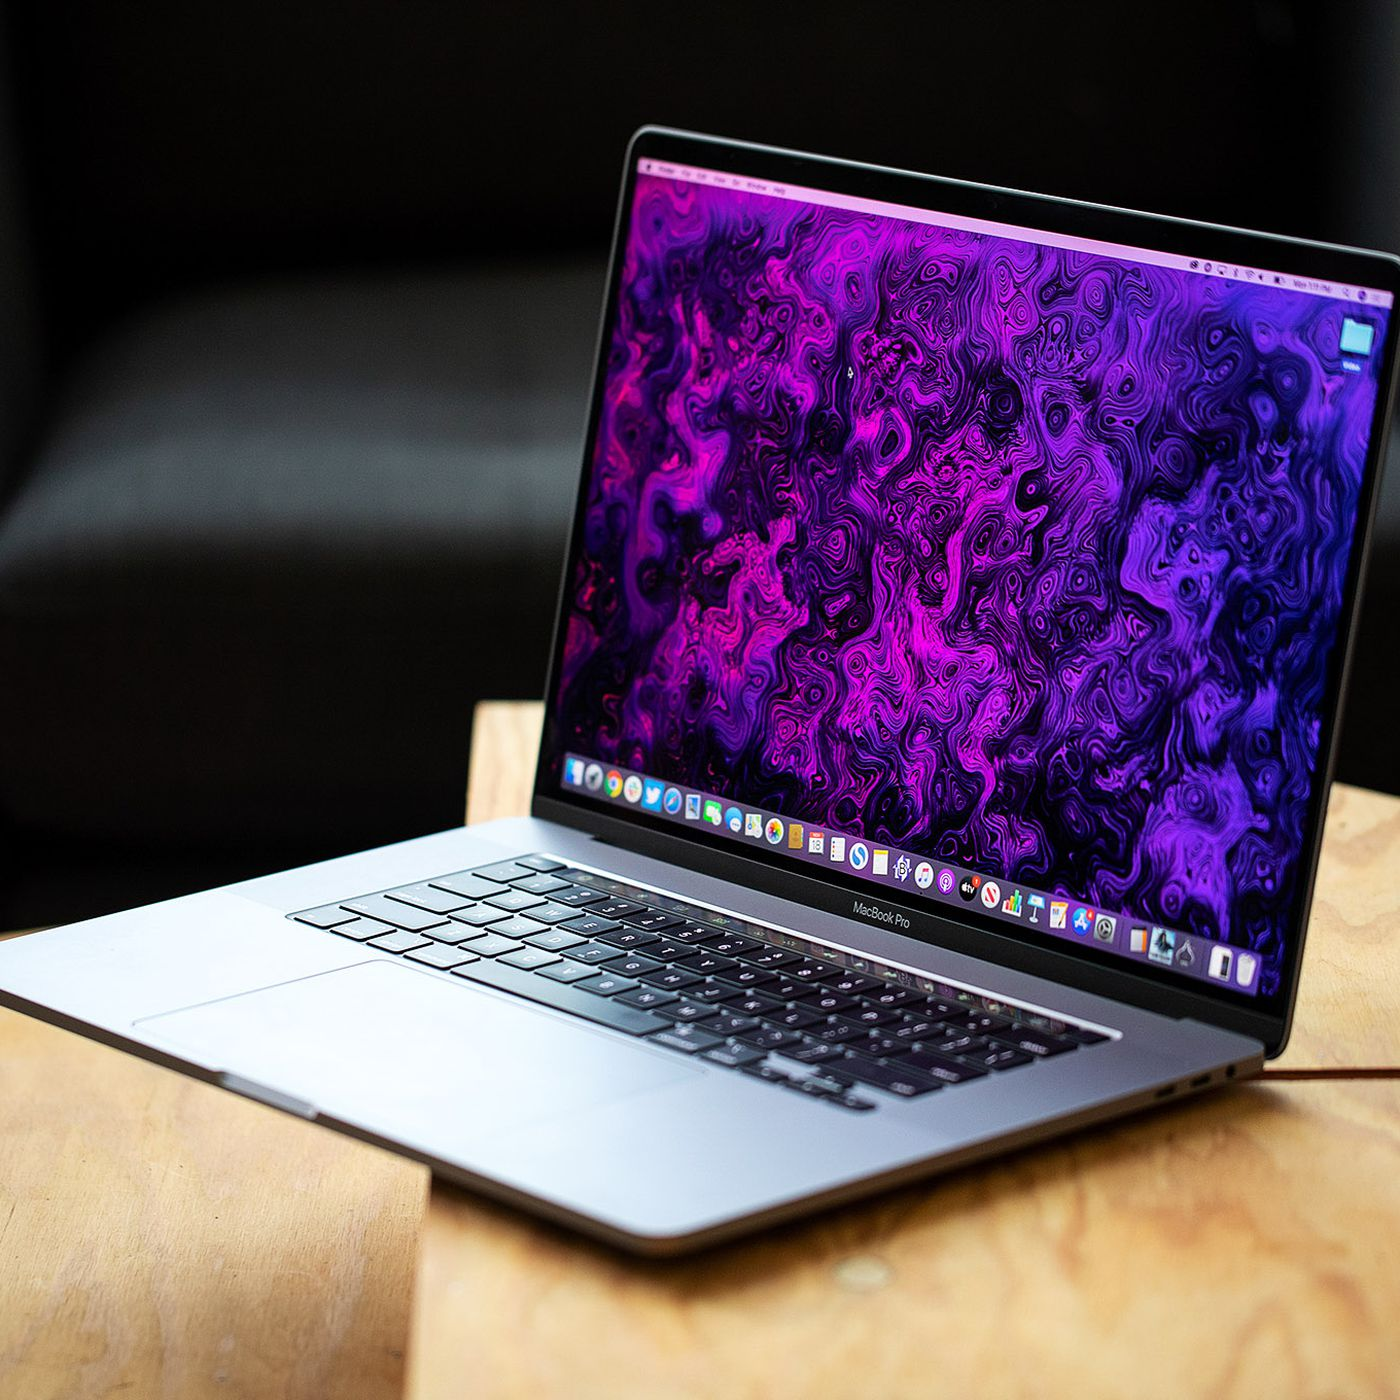 apple arm-based mac features